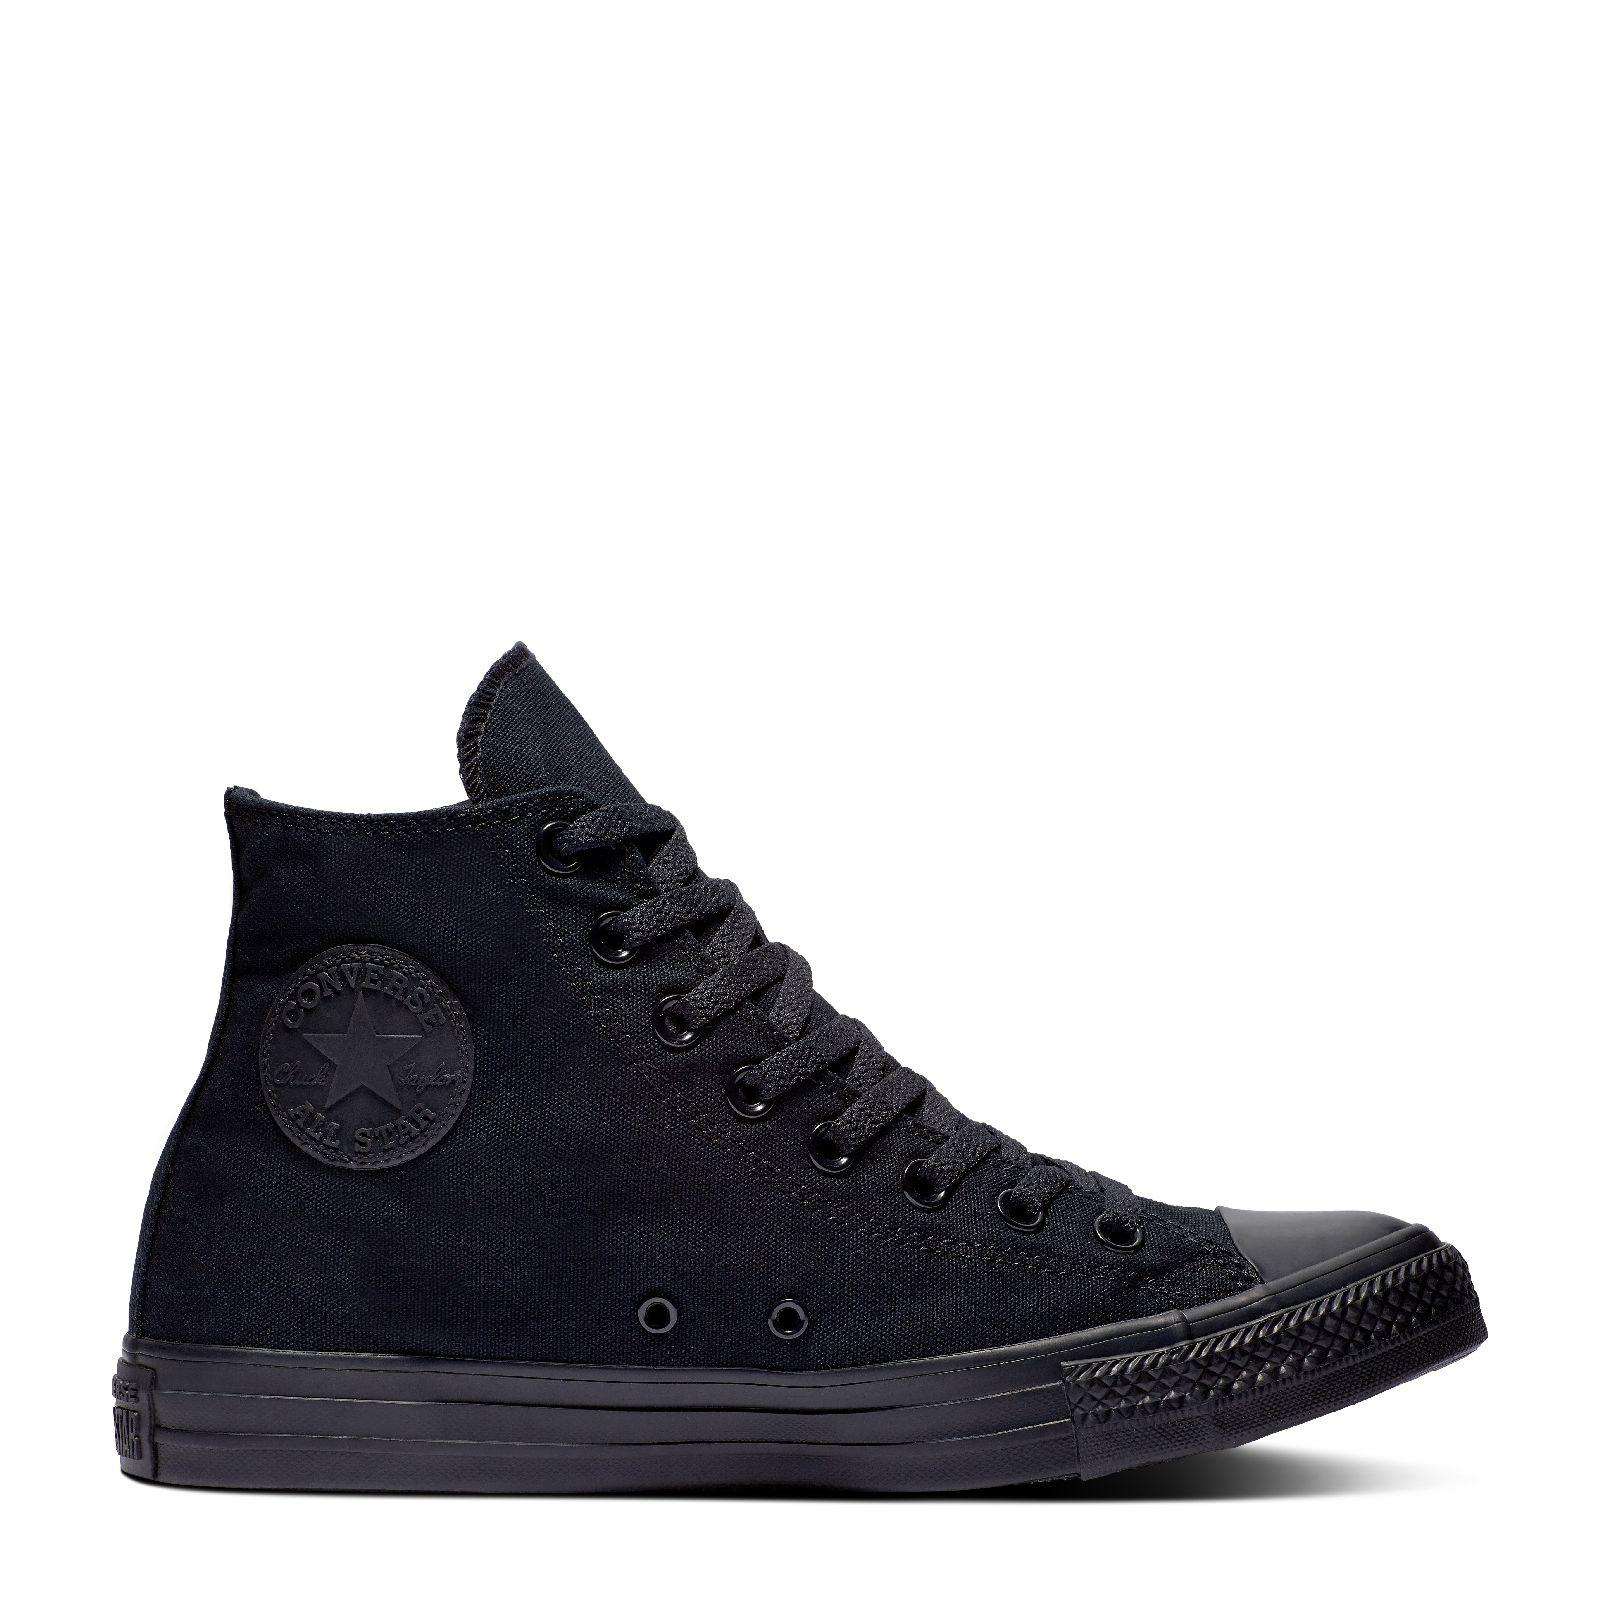 cd2ae74f957375 CONVERSE CHUCK TAYLOR ALL STAR - HI - BLACK MONOCHROME - 19162 - M3310C